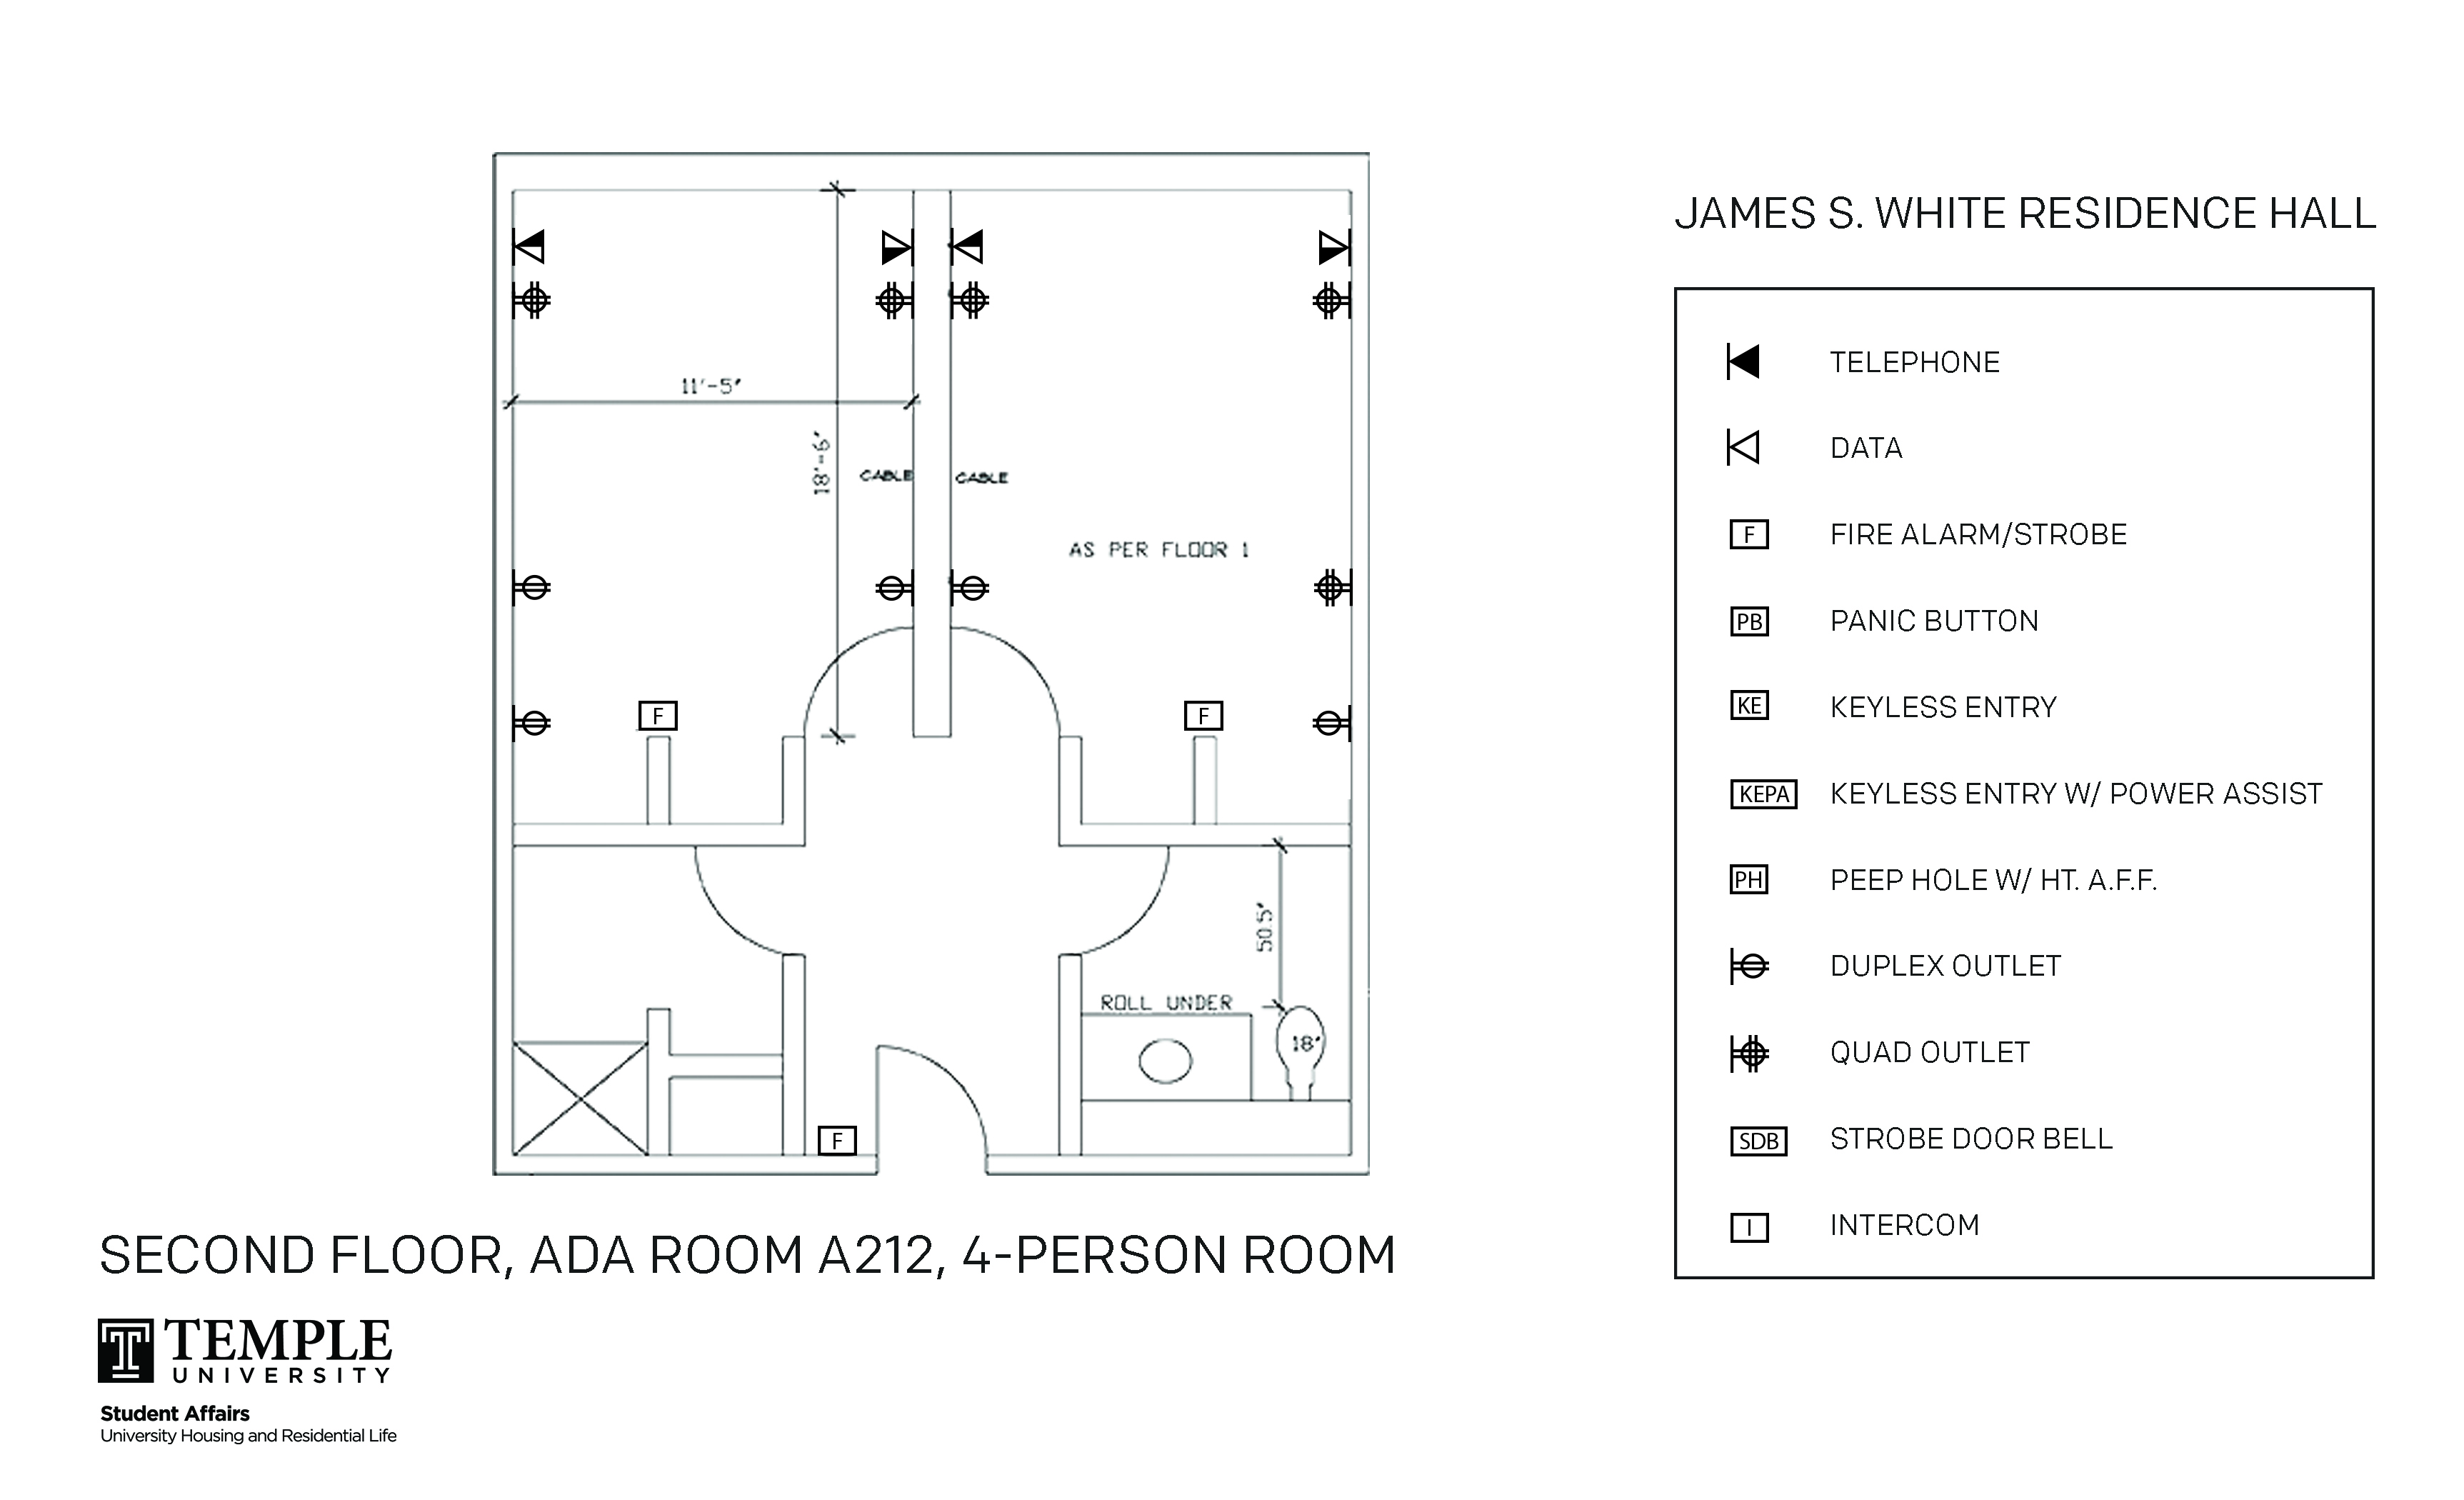 Accessible Room Diagrams: 4 person, 2 bedroom Suite - A212